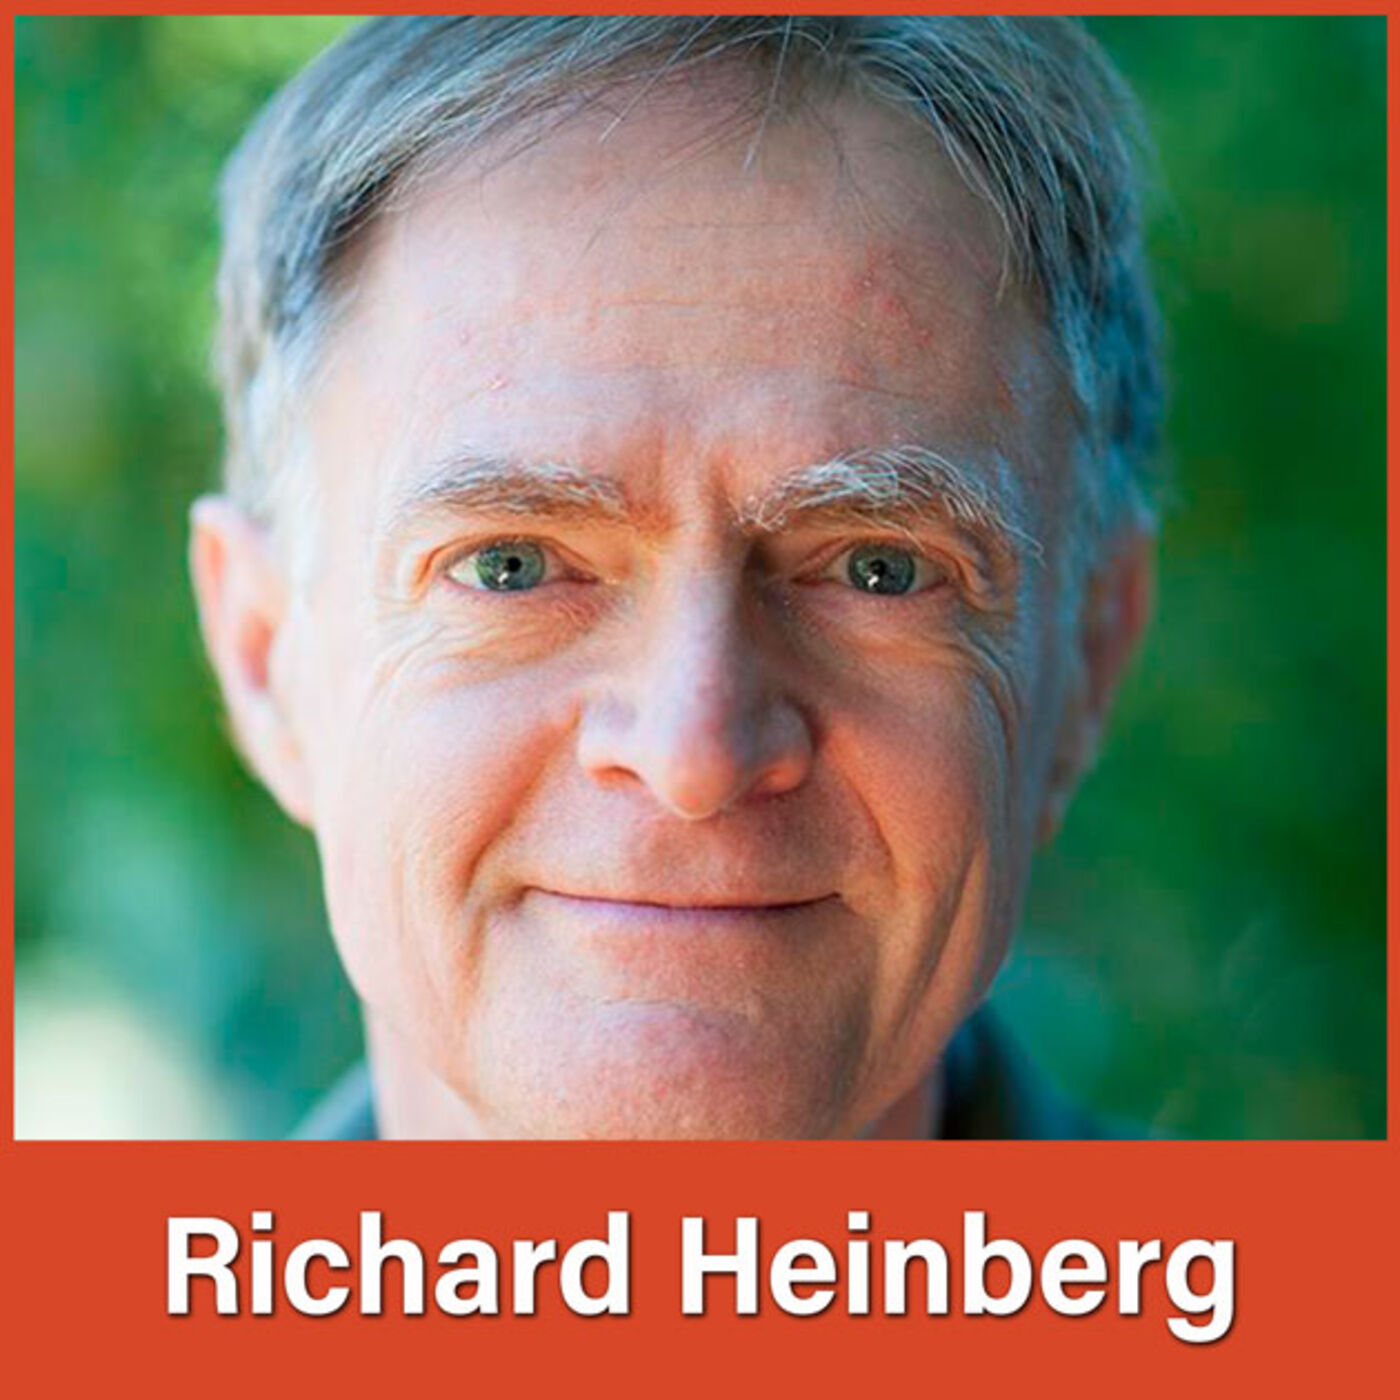 #43 Richard Heinberg: Changing Our Relationship with Power